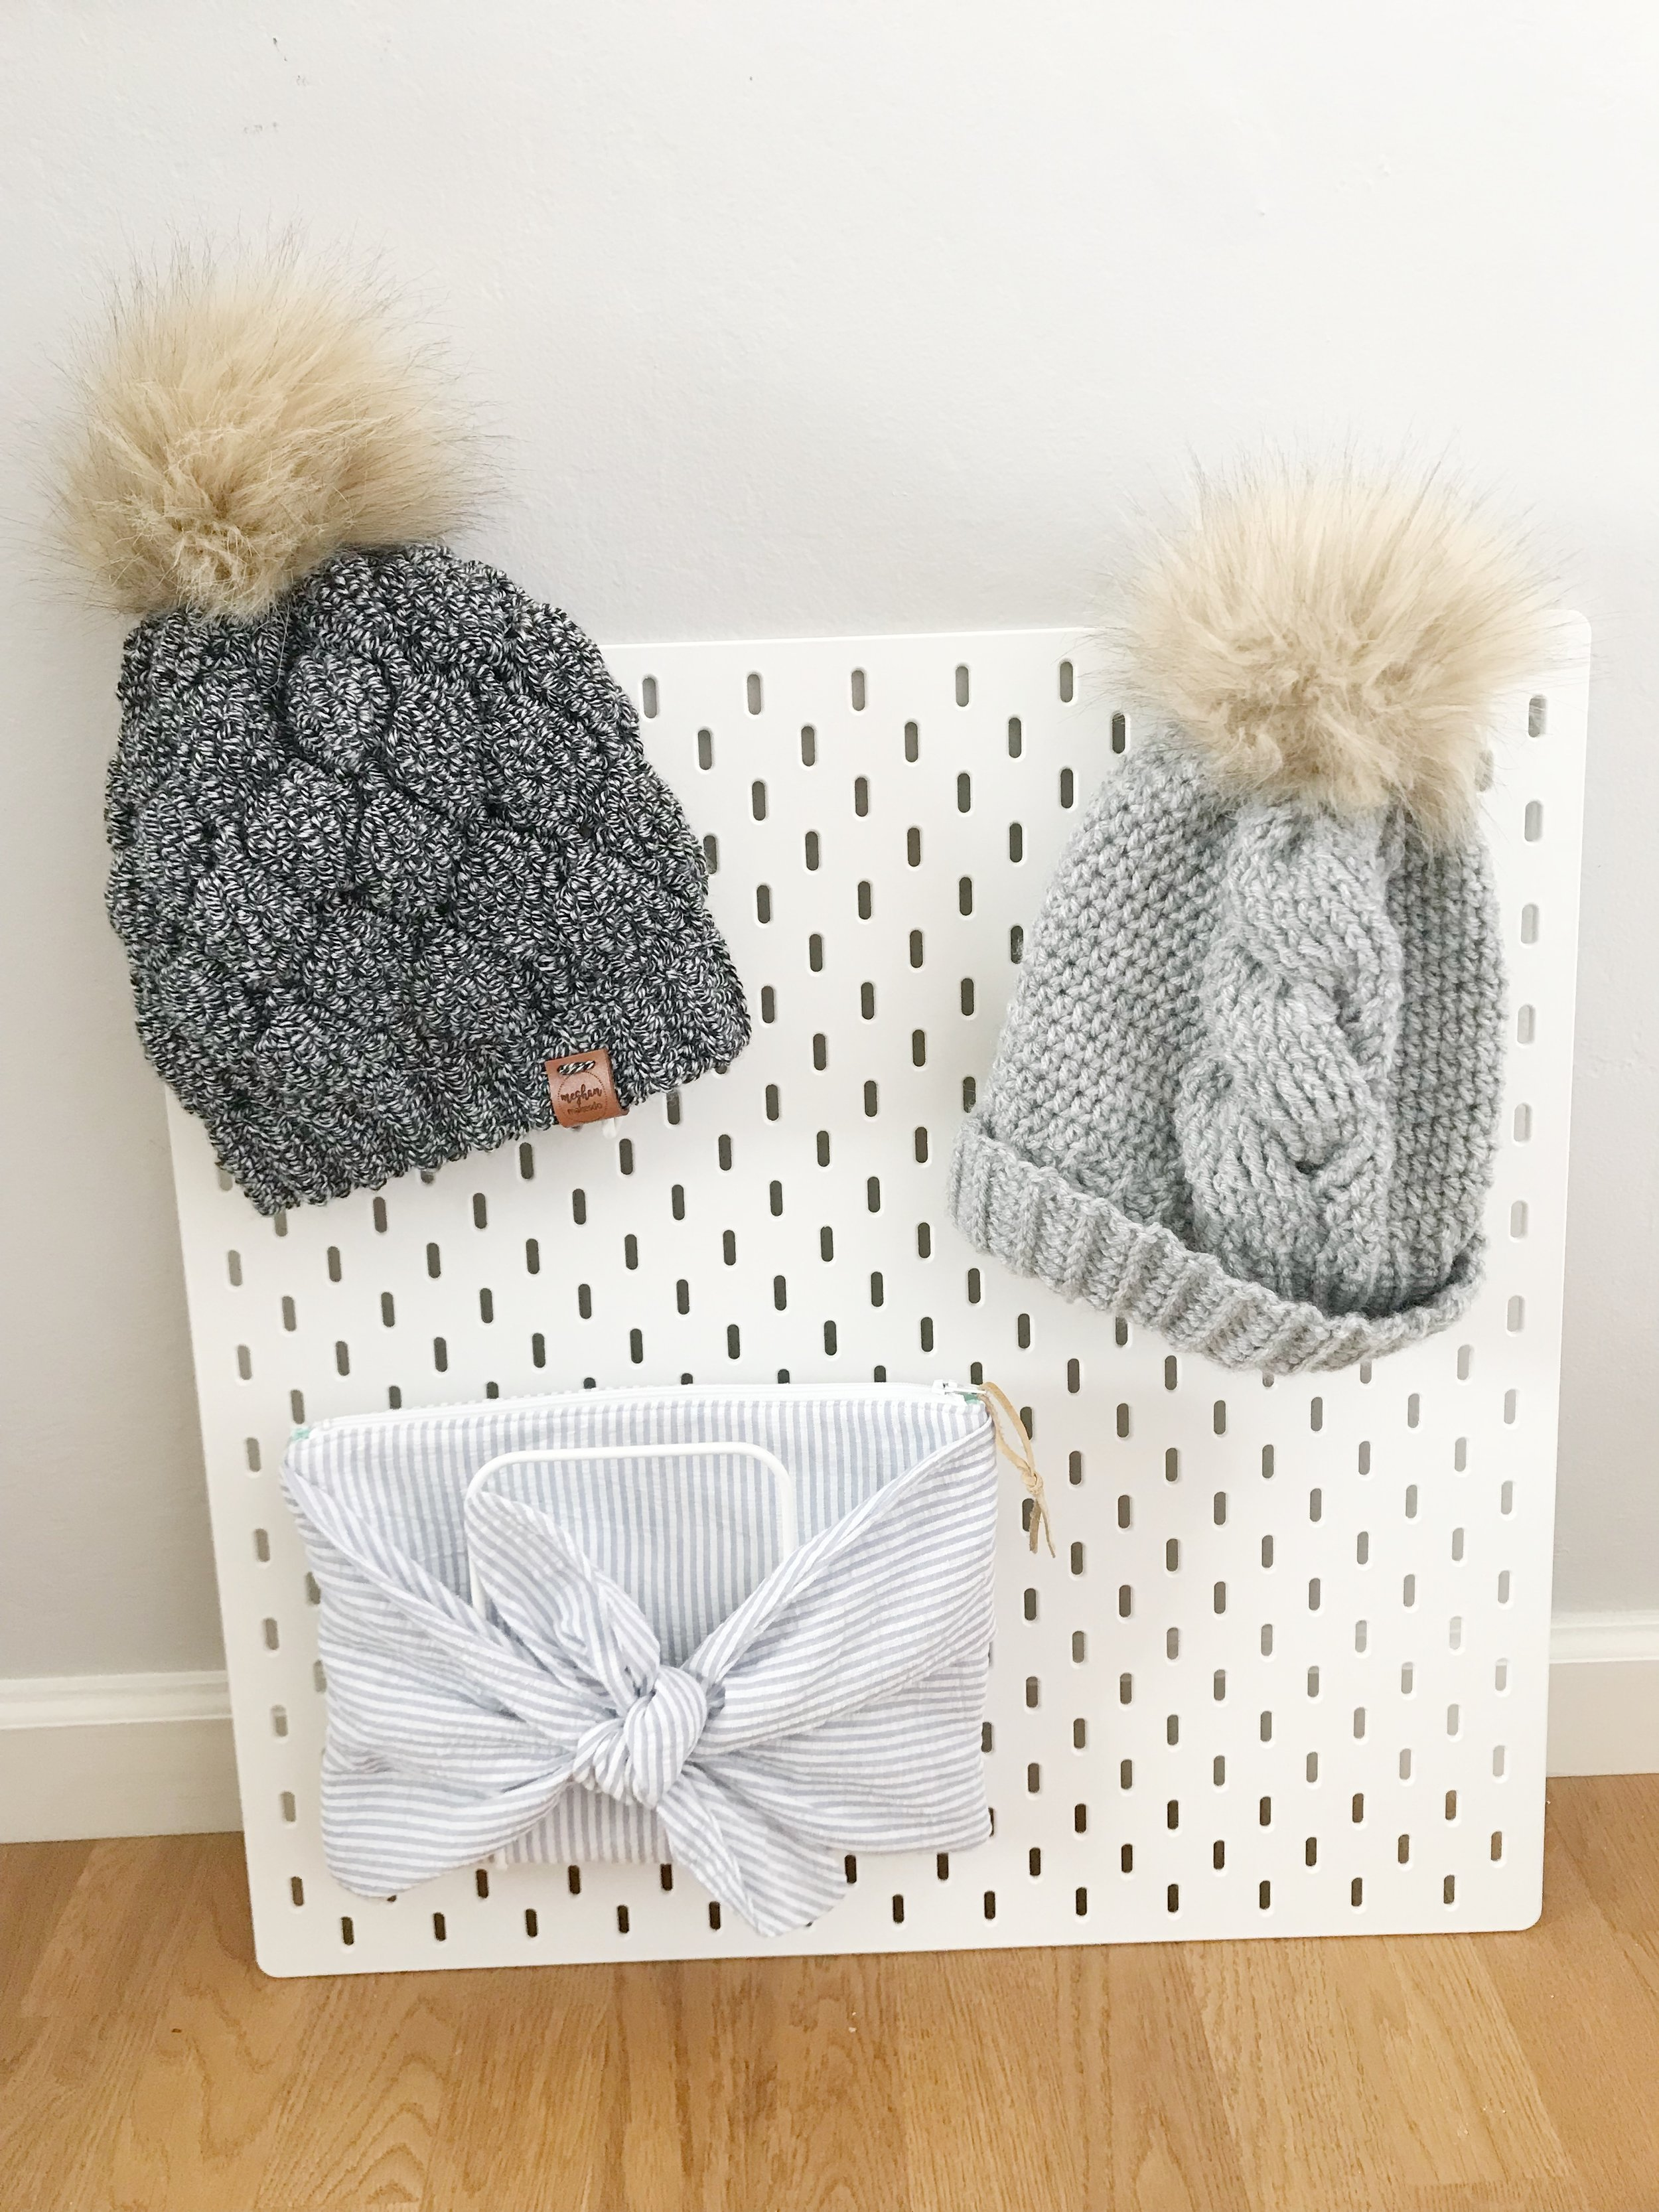 Craft Show Display Ideas From Ikea Meghan Makes Do